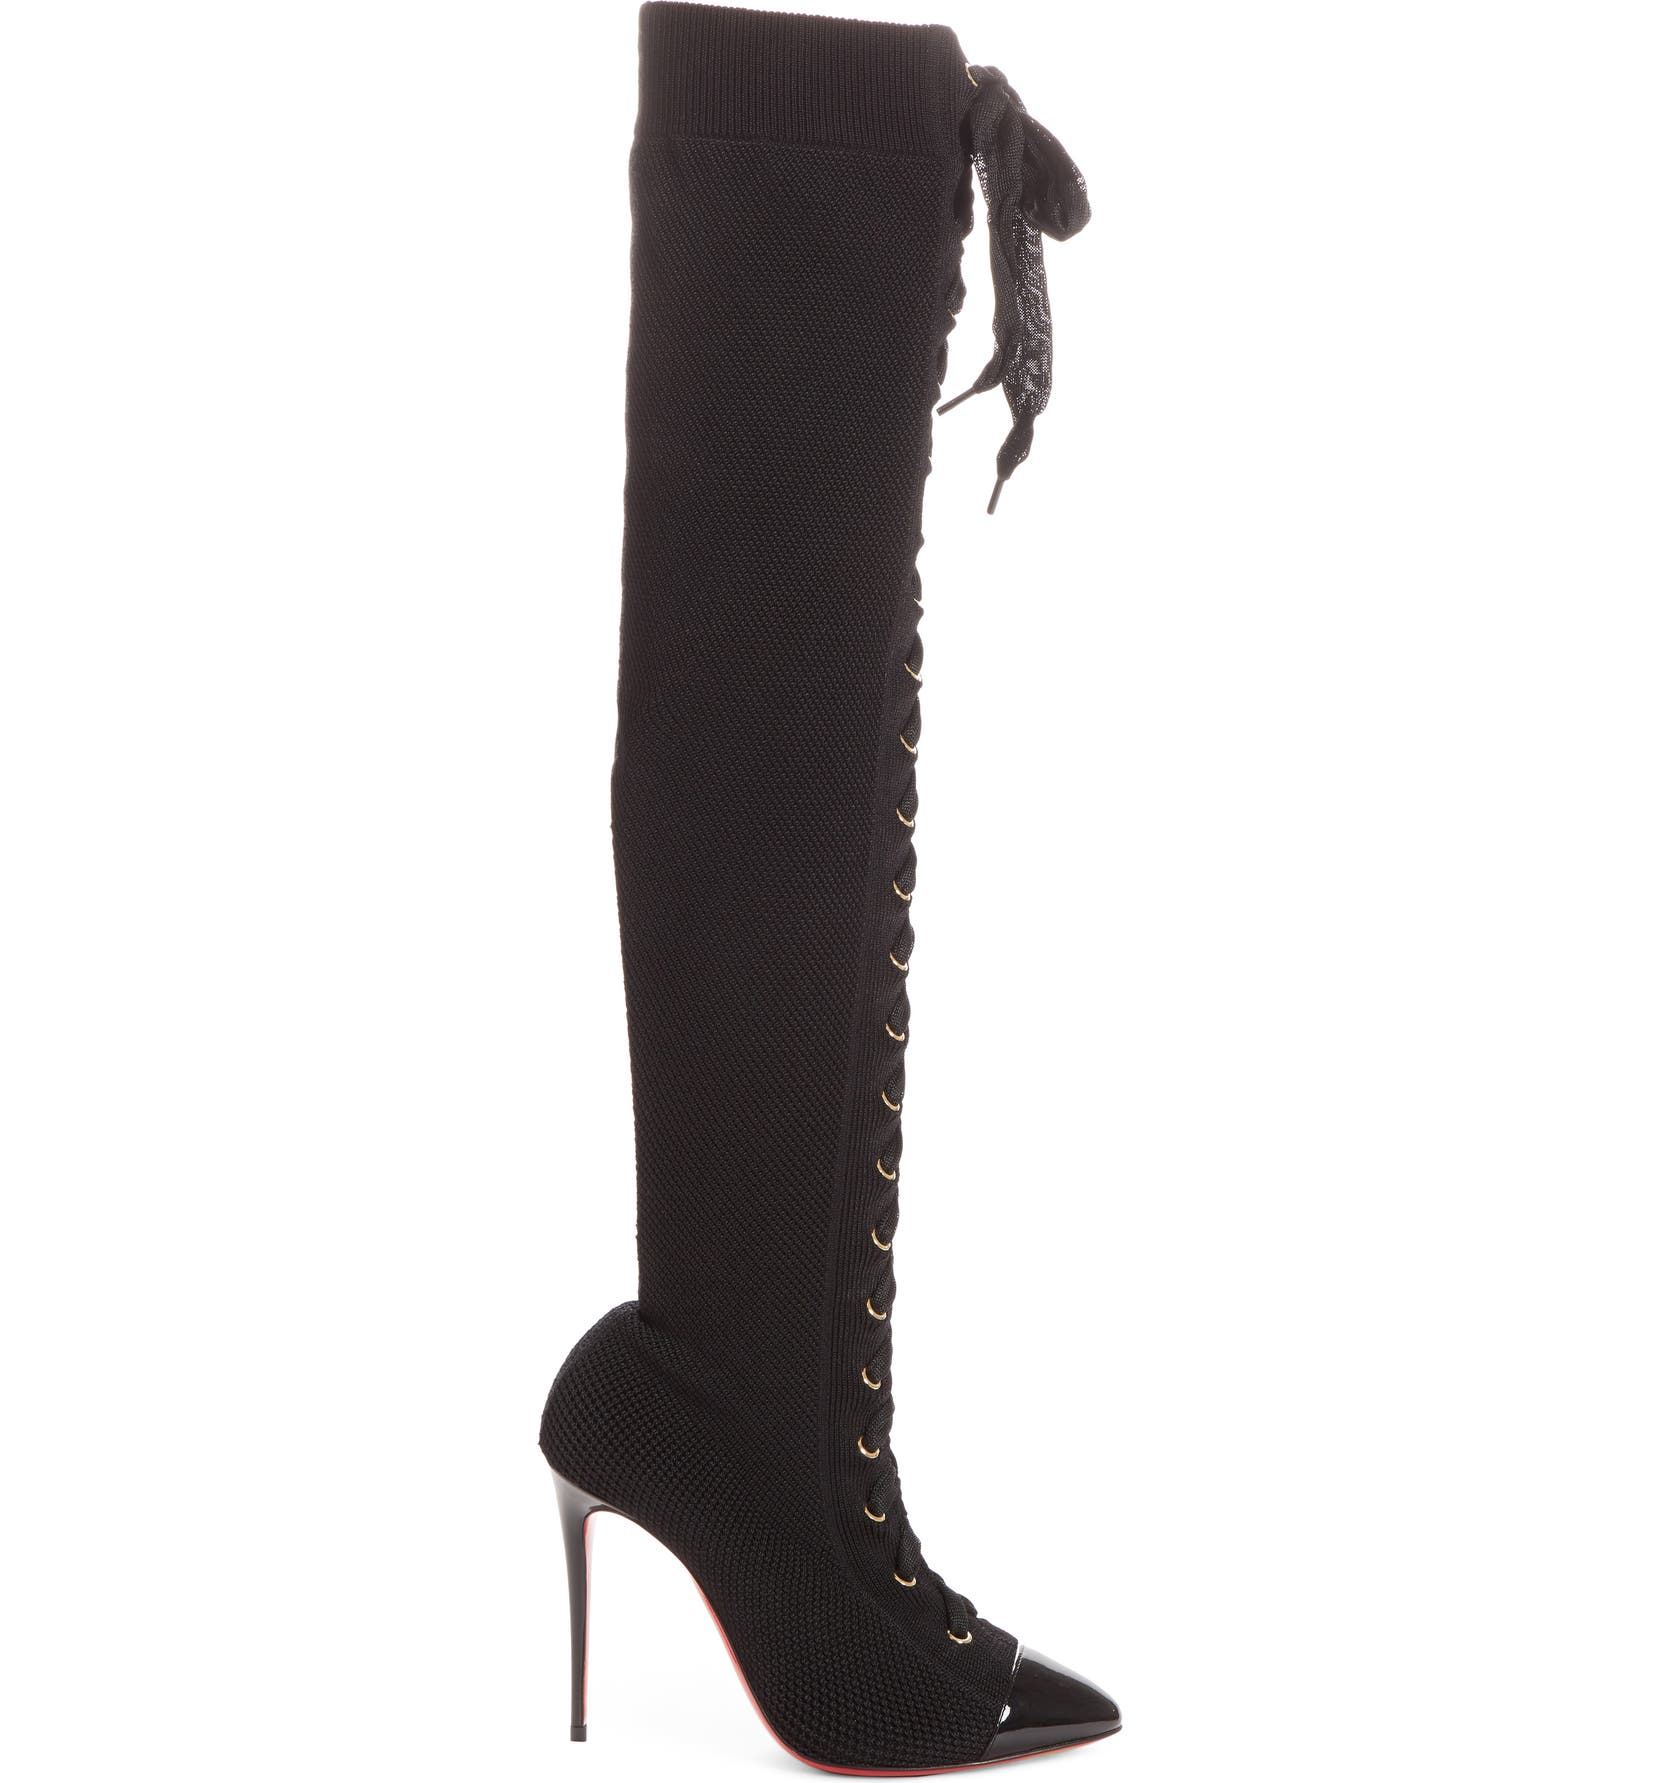 brand new 3ea3d 7075a Christian Louboutin Frenchie Lace-Up Over the Knee Sock Boot ...